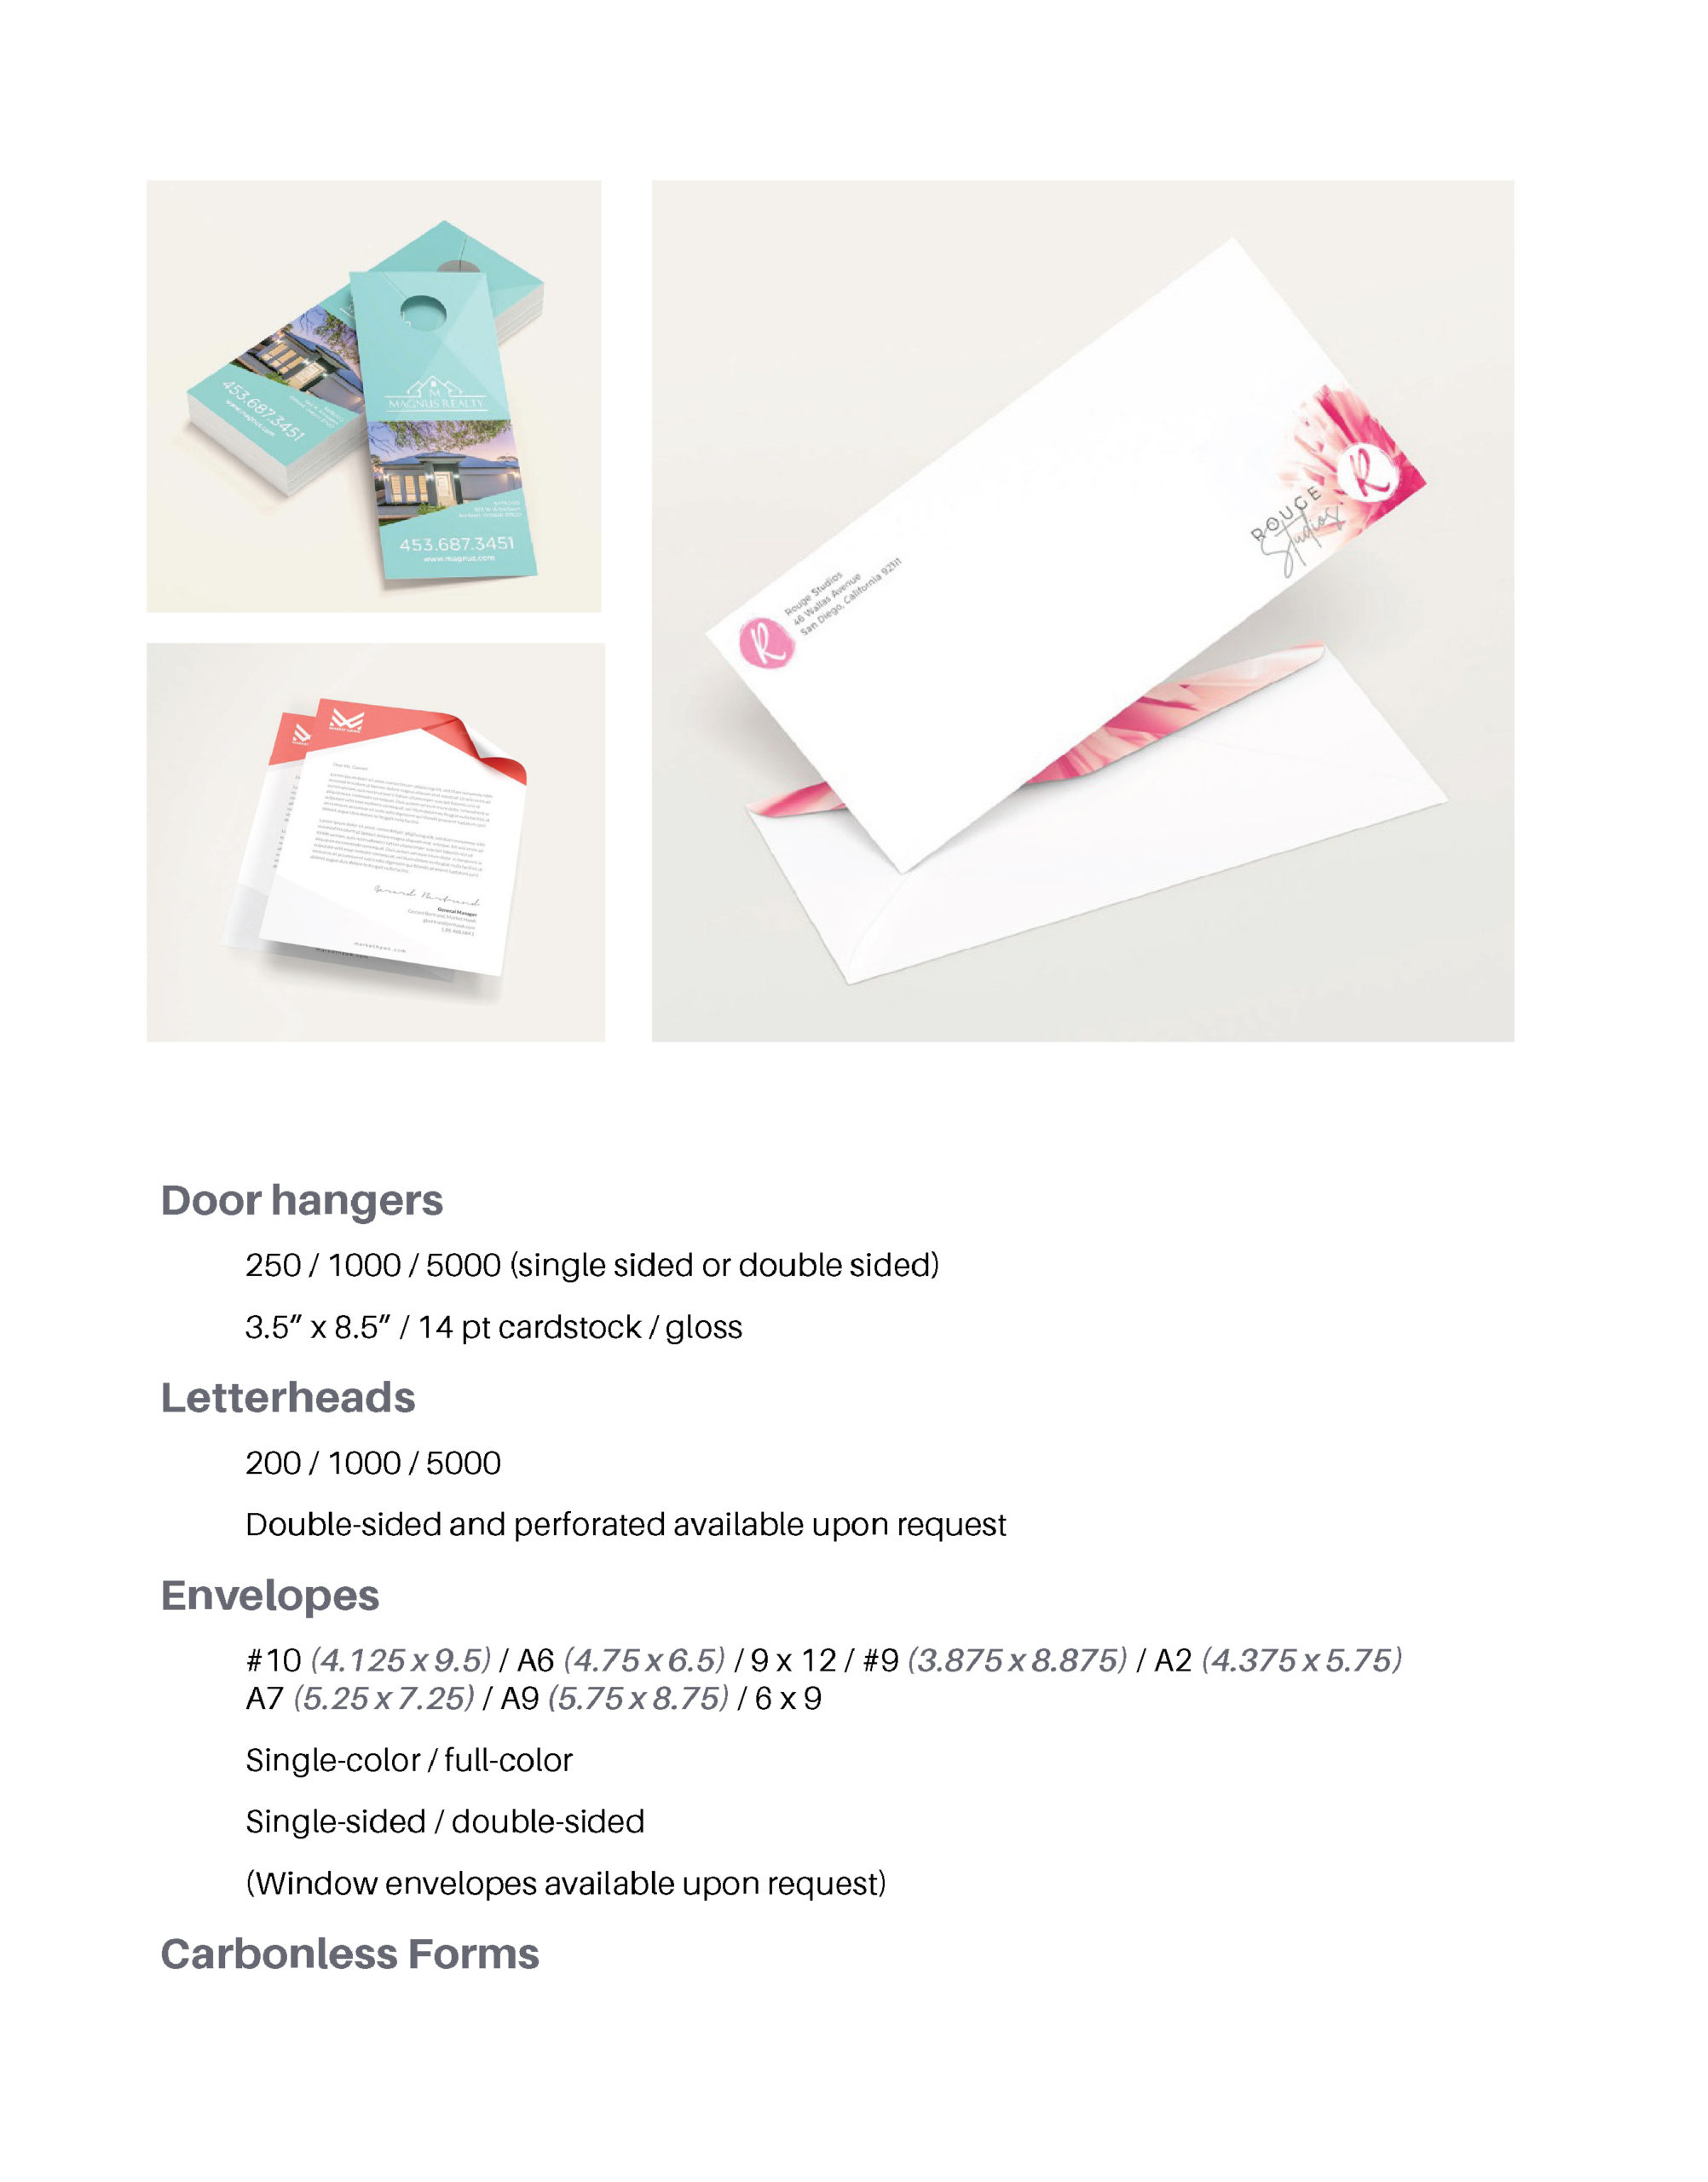 Page featuring product details on: door hangers, letterheads, envelopes, carbonless forms